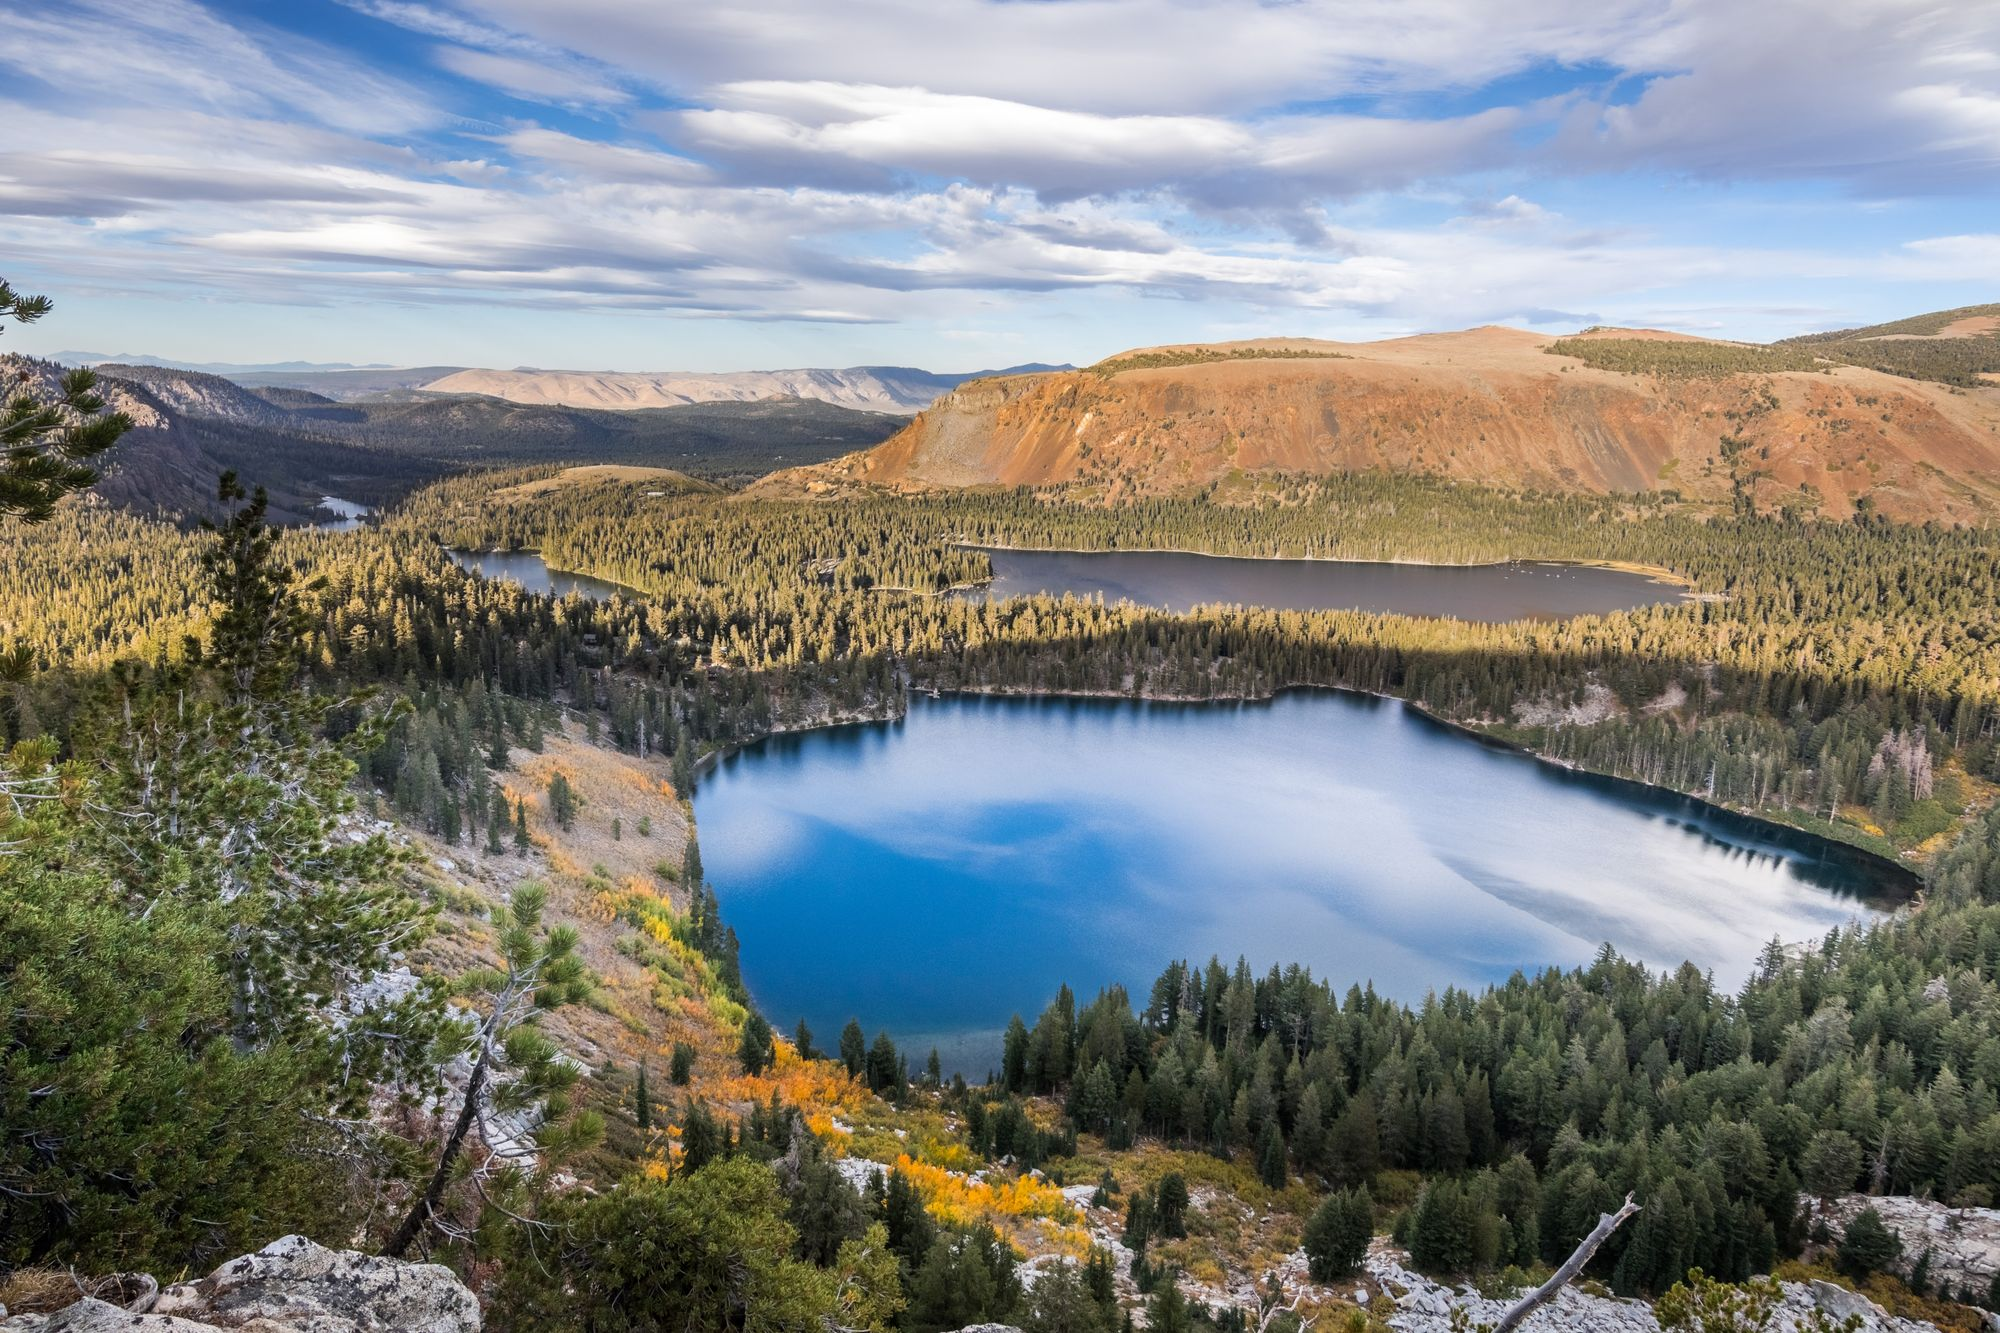 Aerial View of Mammoth Lakes basin